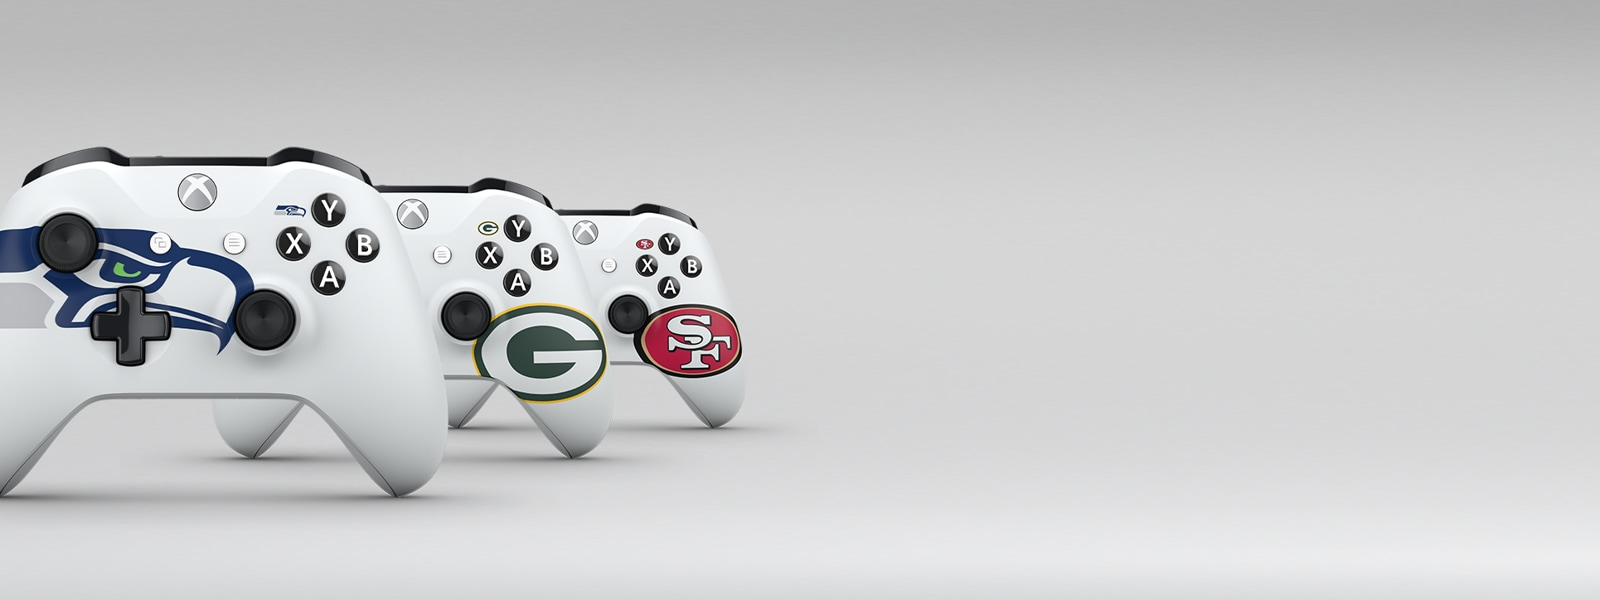 Seattle Seahawks, Green Bay Packers, and San Francisco fourty niners styled xbox one controllers lined up